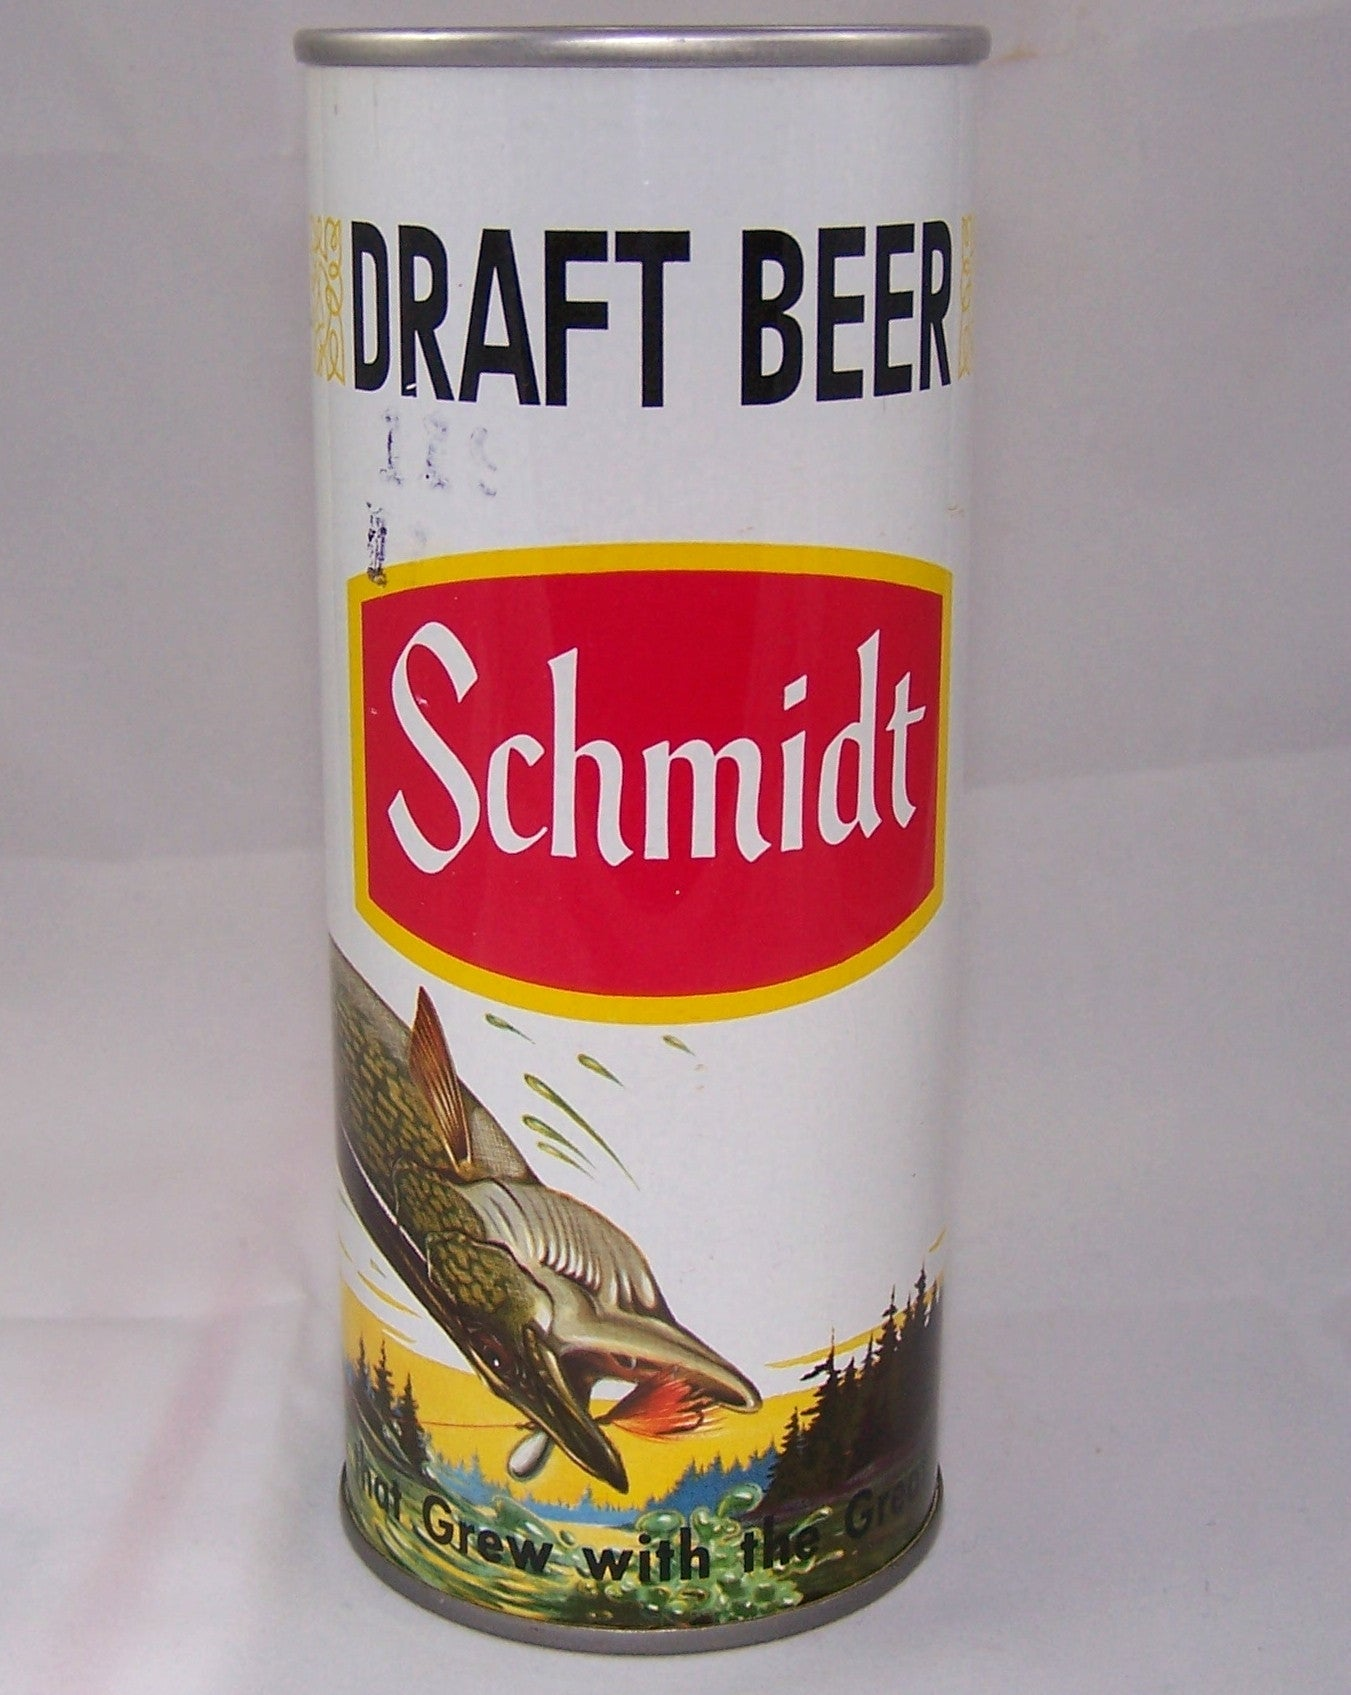 Schmidt Draft Beer (Northern Pike) USBC II 202-set 27-1, Grade 1/1+